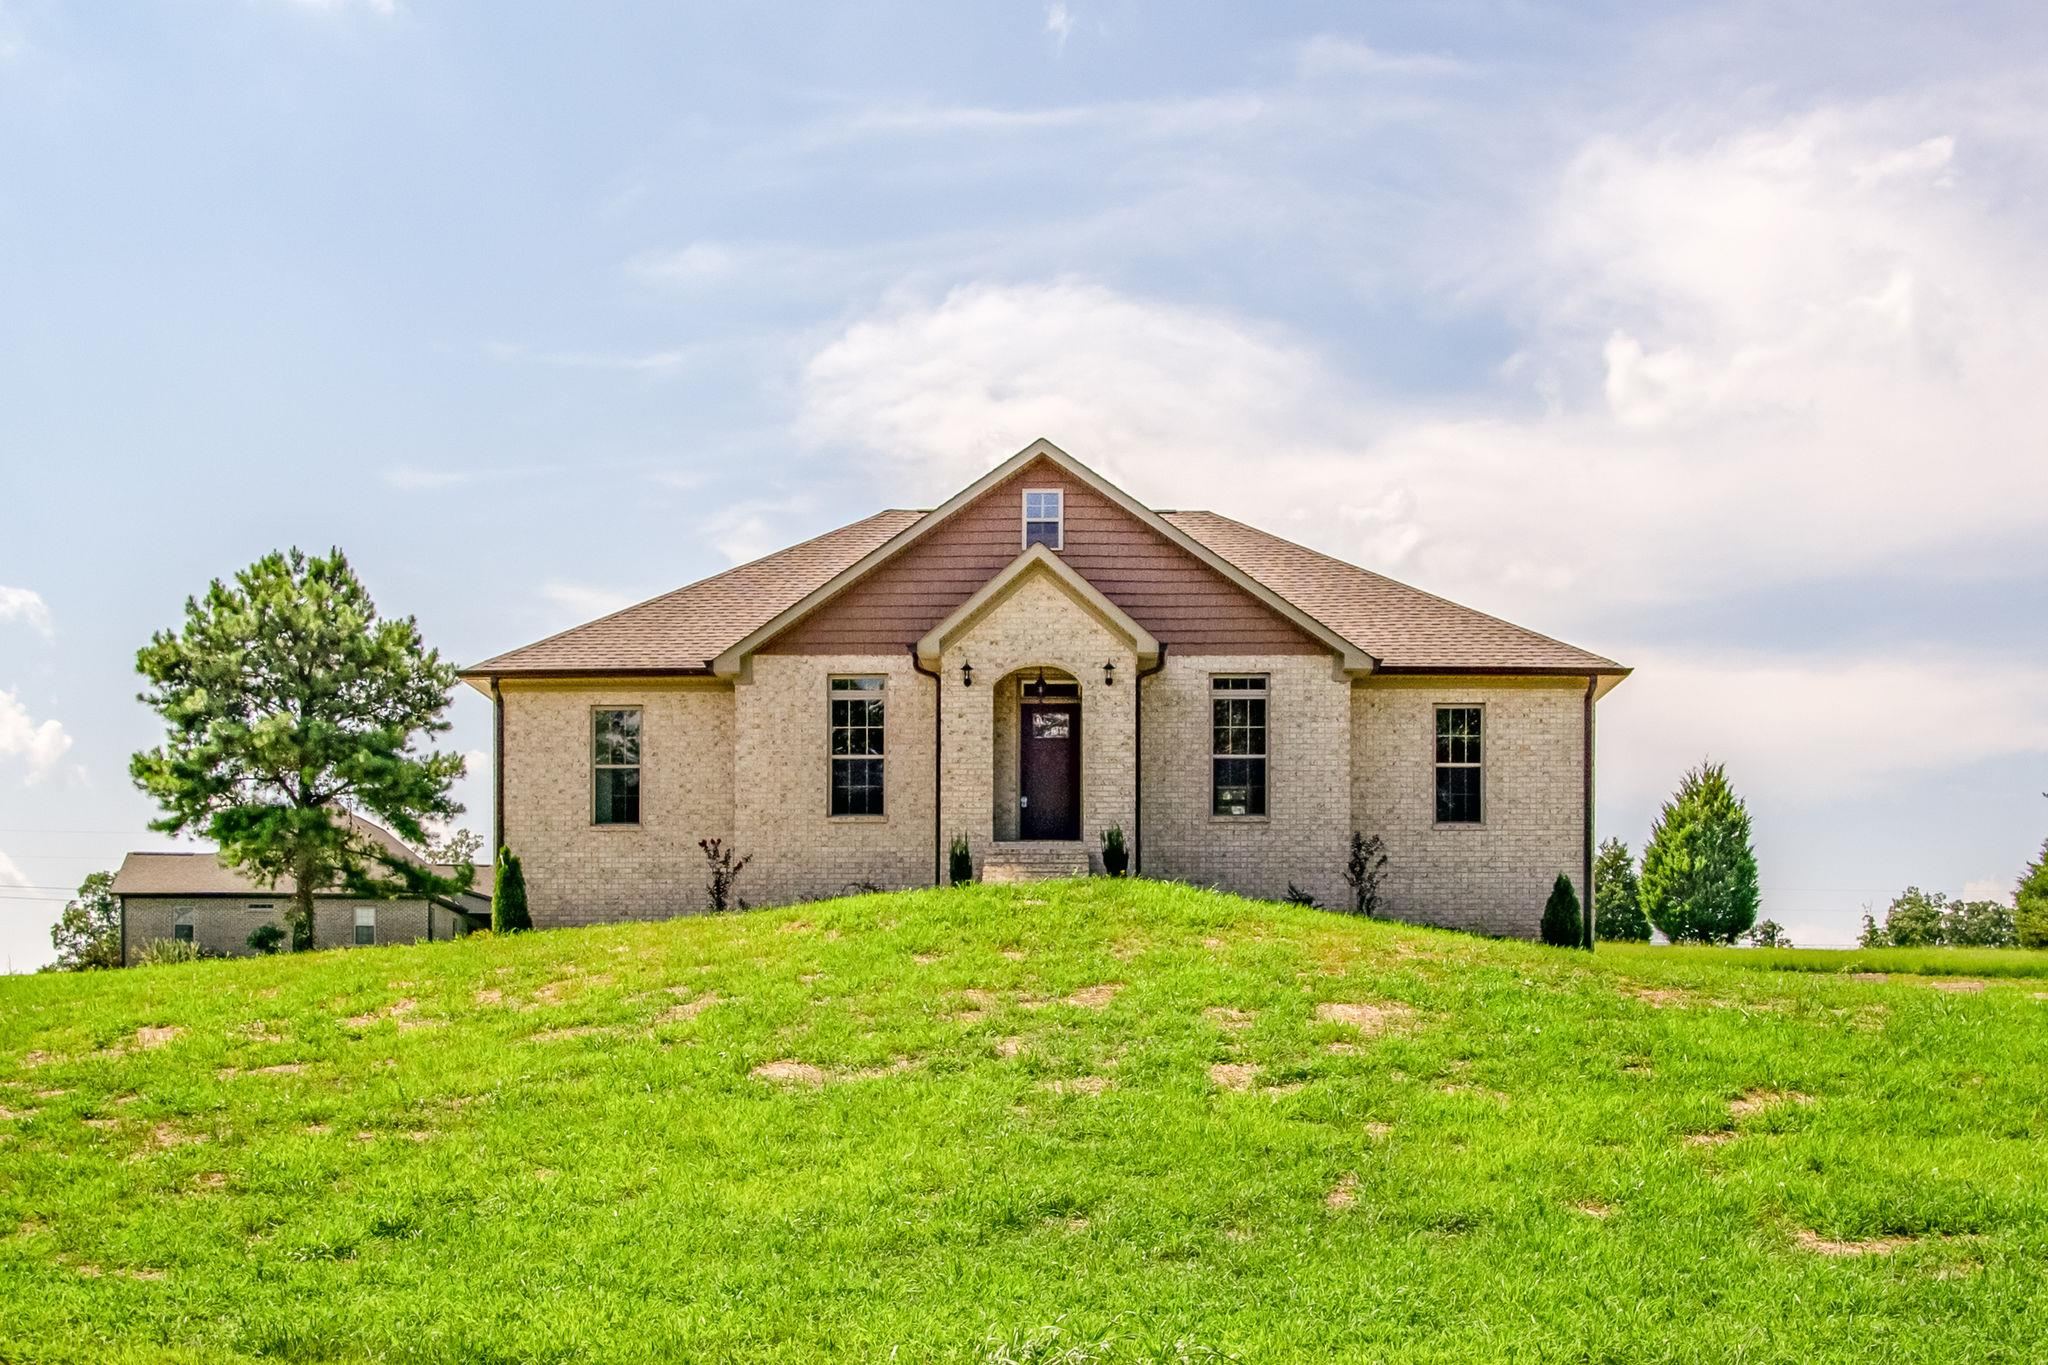 396 Double Eagle Dr, Summertown, TN 38483 - Summertown, TN real estate listing